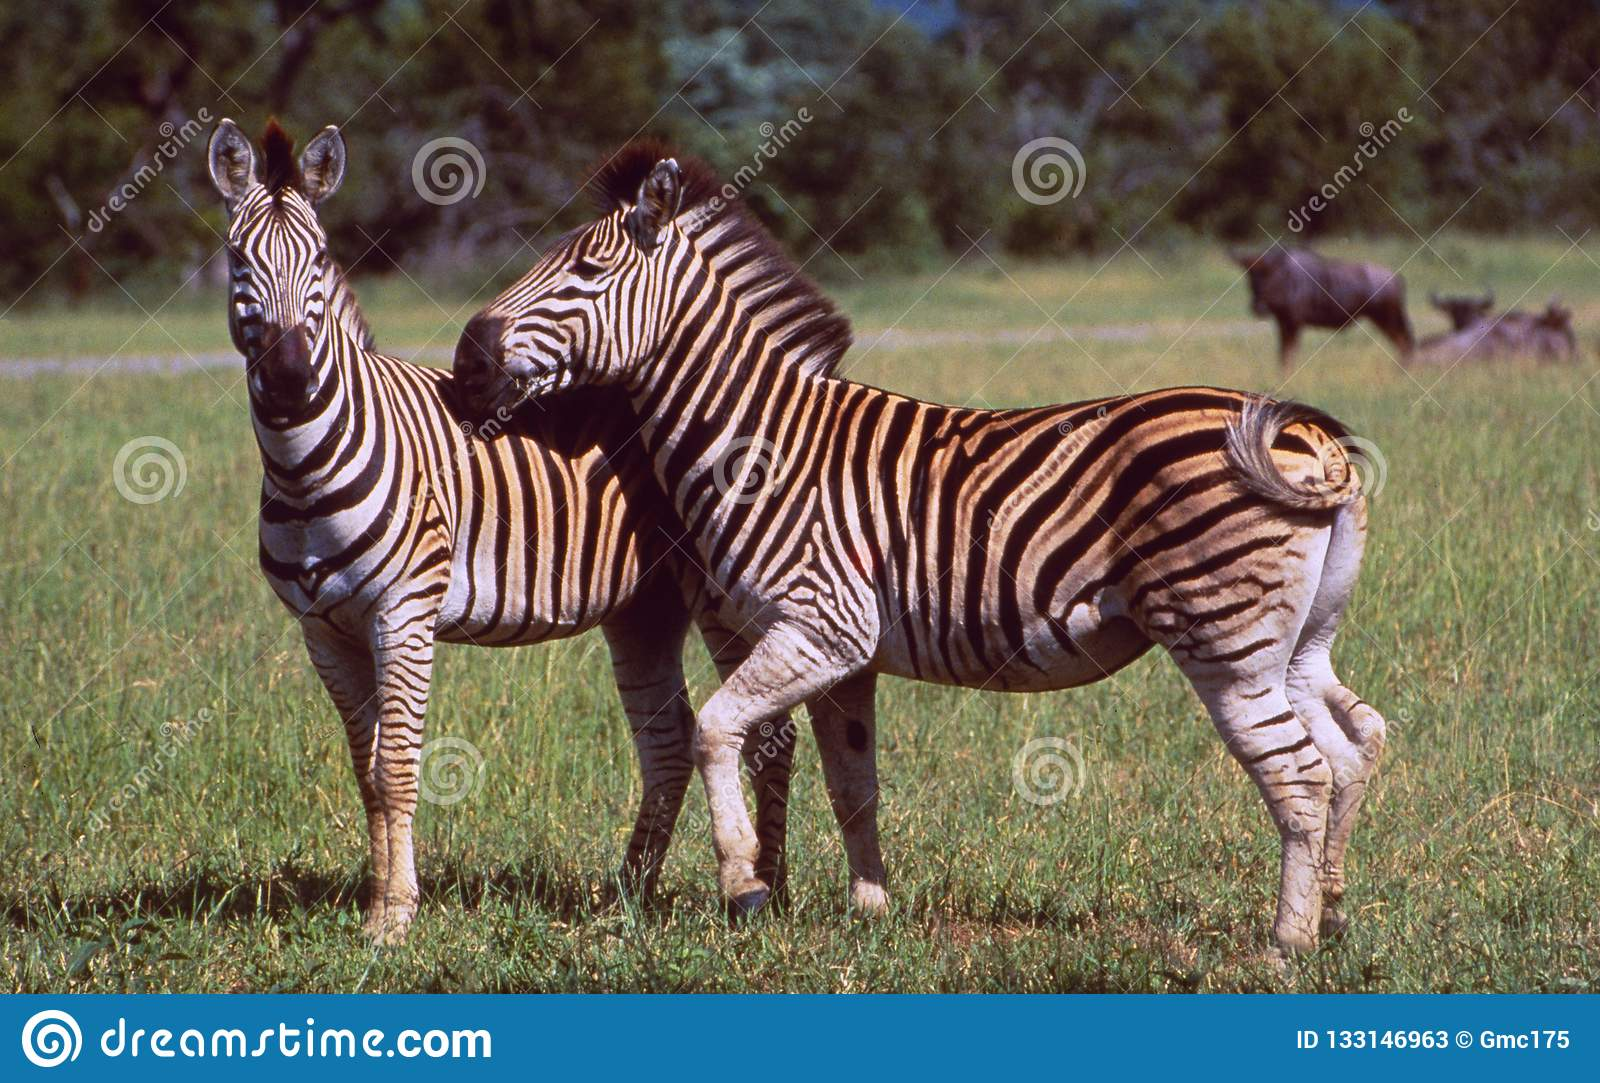 South Africa: Two Zebras in the wilderness of Hluhluwe Wildlife